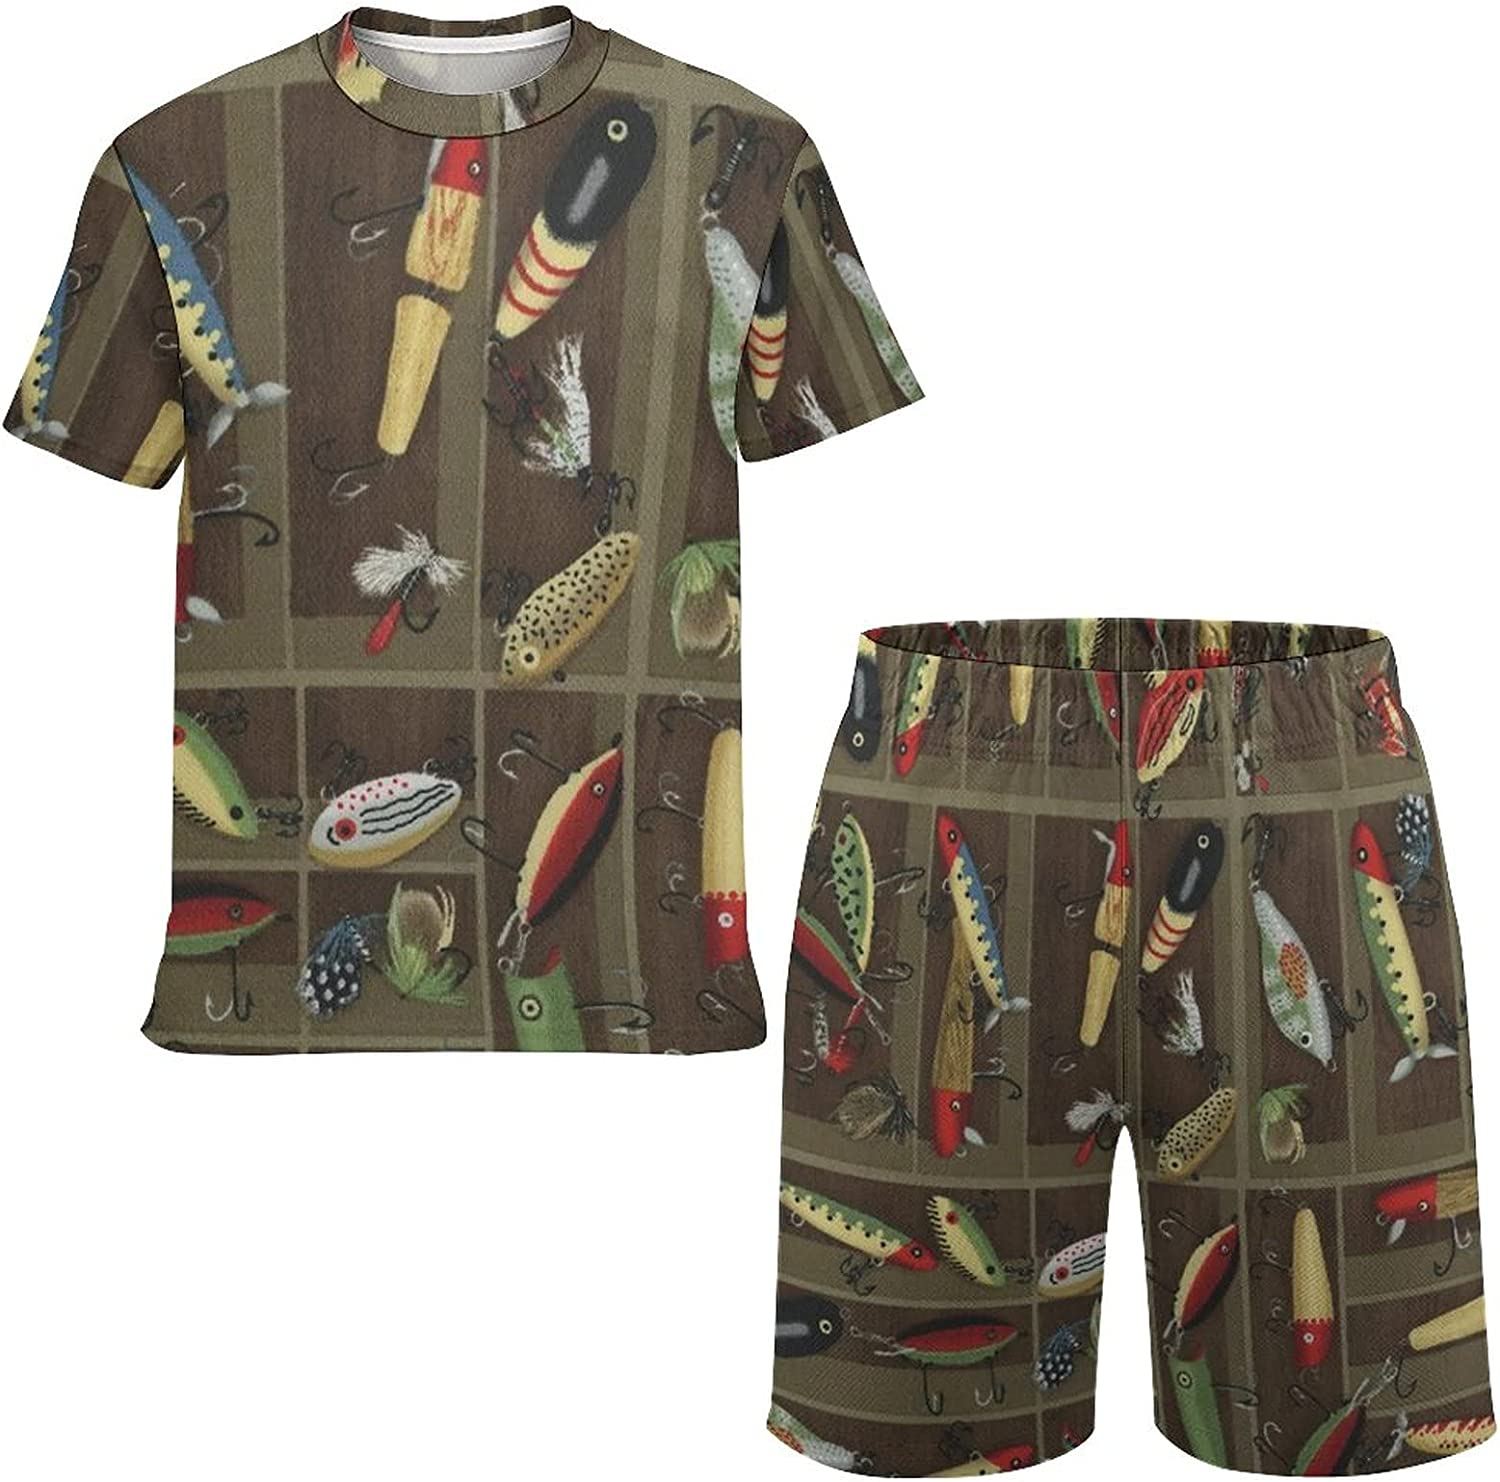 SWEET TANG Boys Casual Outdoor Tee T-Shirt and Short Summer Outfit 2 Piece Set, Vintage Fishing Lure Style Undershirt and Mesh Shorts, Funny Short Sleeve T-Shirts Tops Shorts for Workout, X-Small